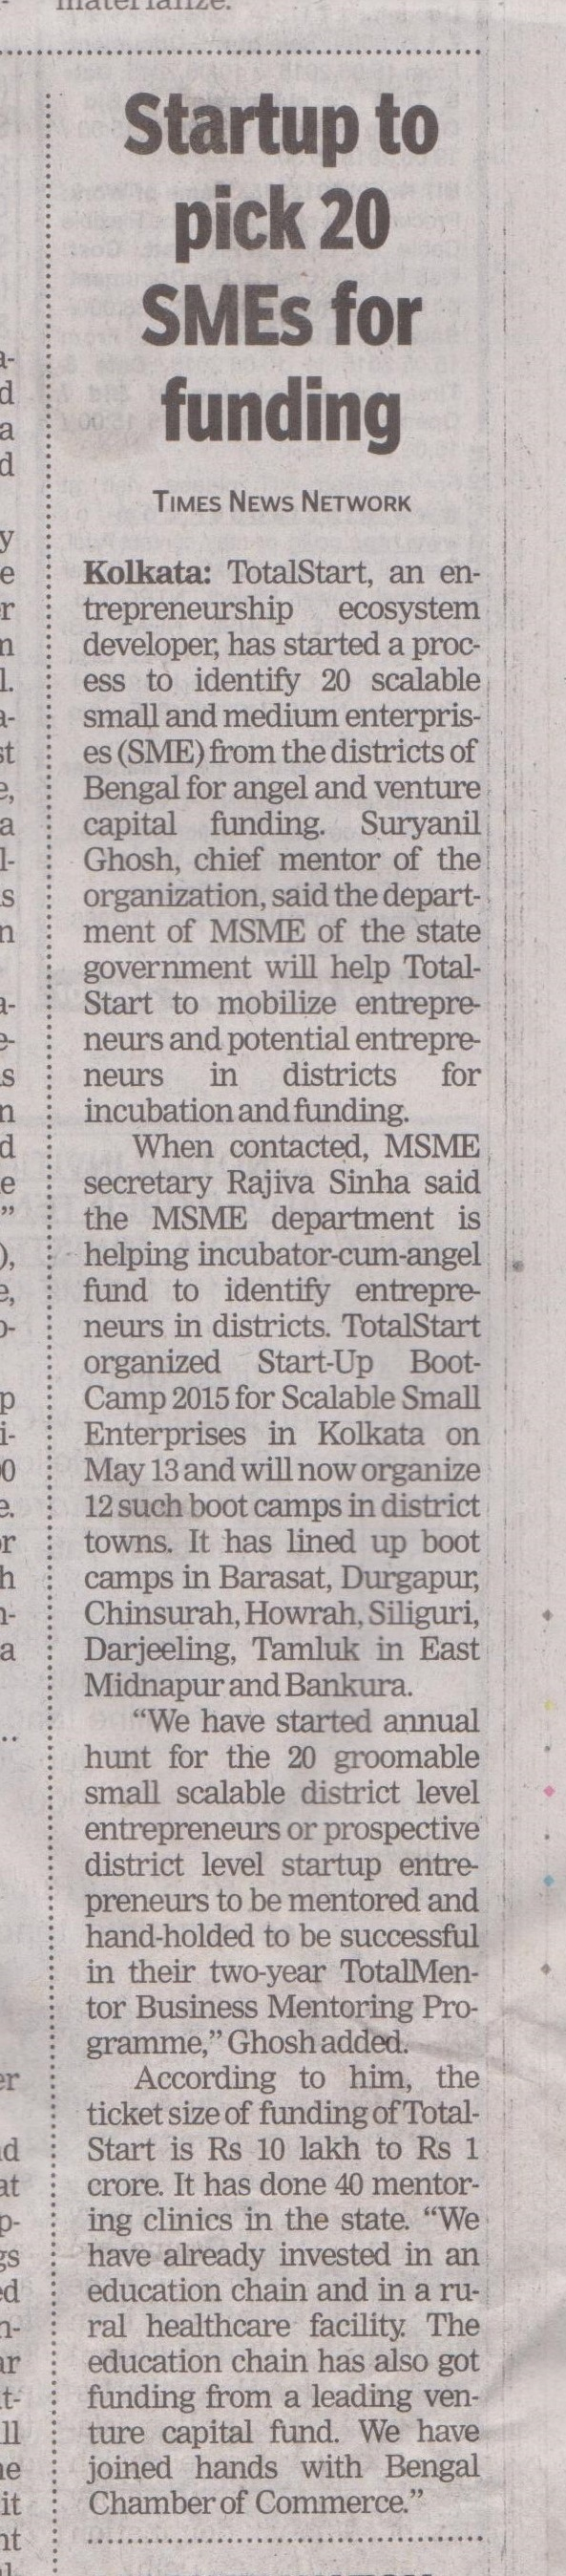 Times Network Coverage of TotalStart Bengal